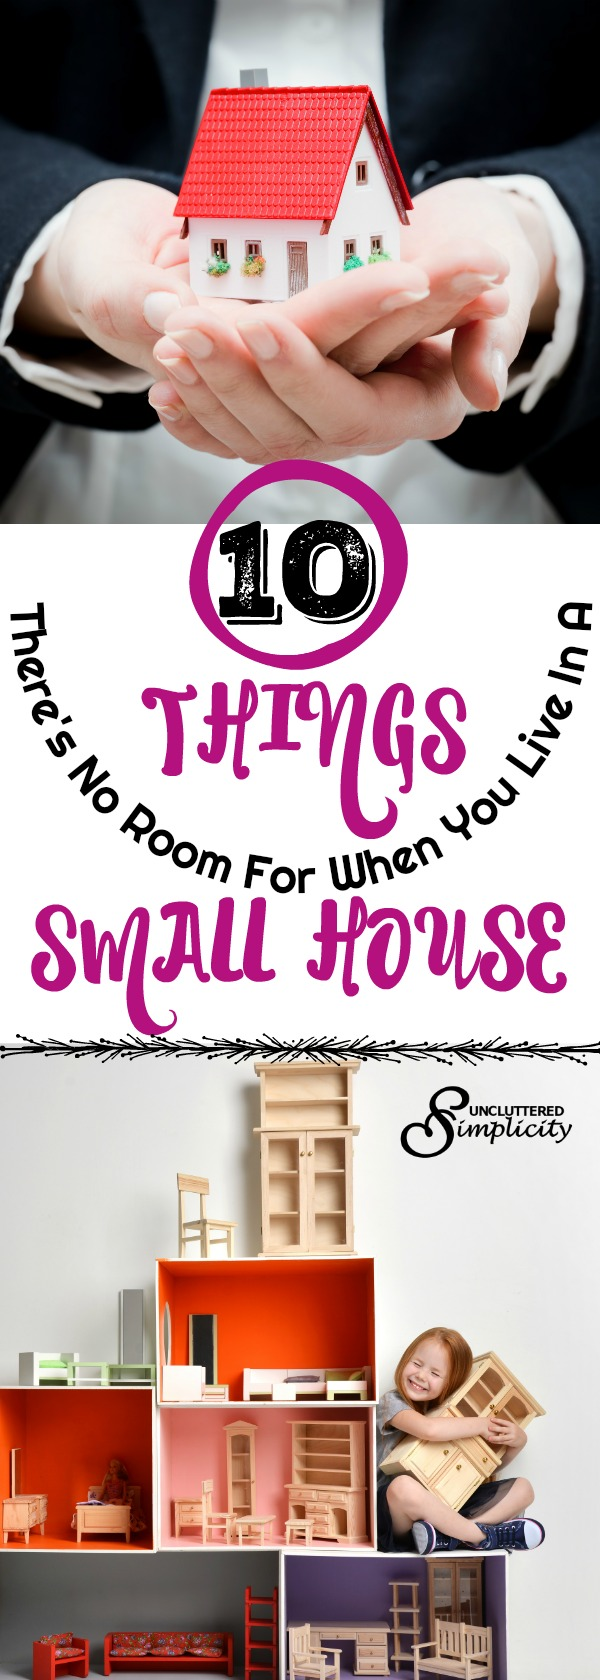 small house   living small   how to live in a small house with a family   simple living   tiny house #smallhouse #declutter #organize #smallhousefamily